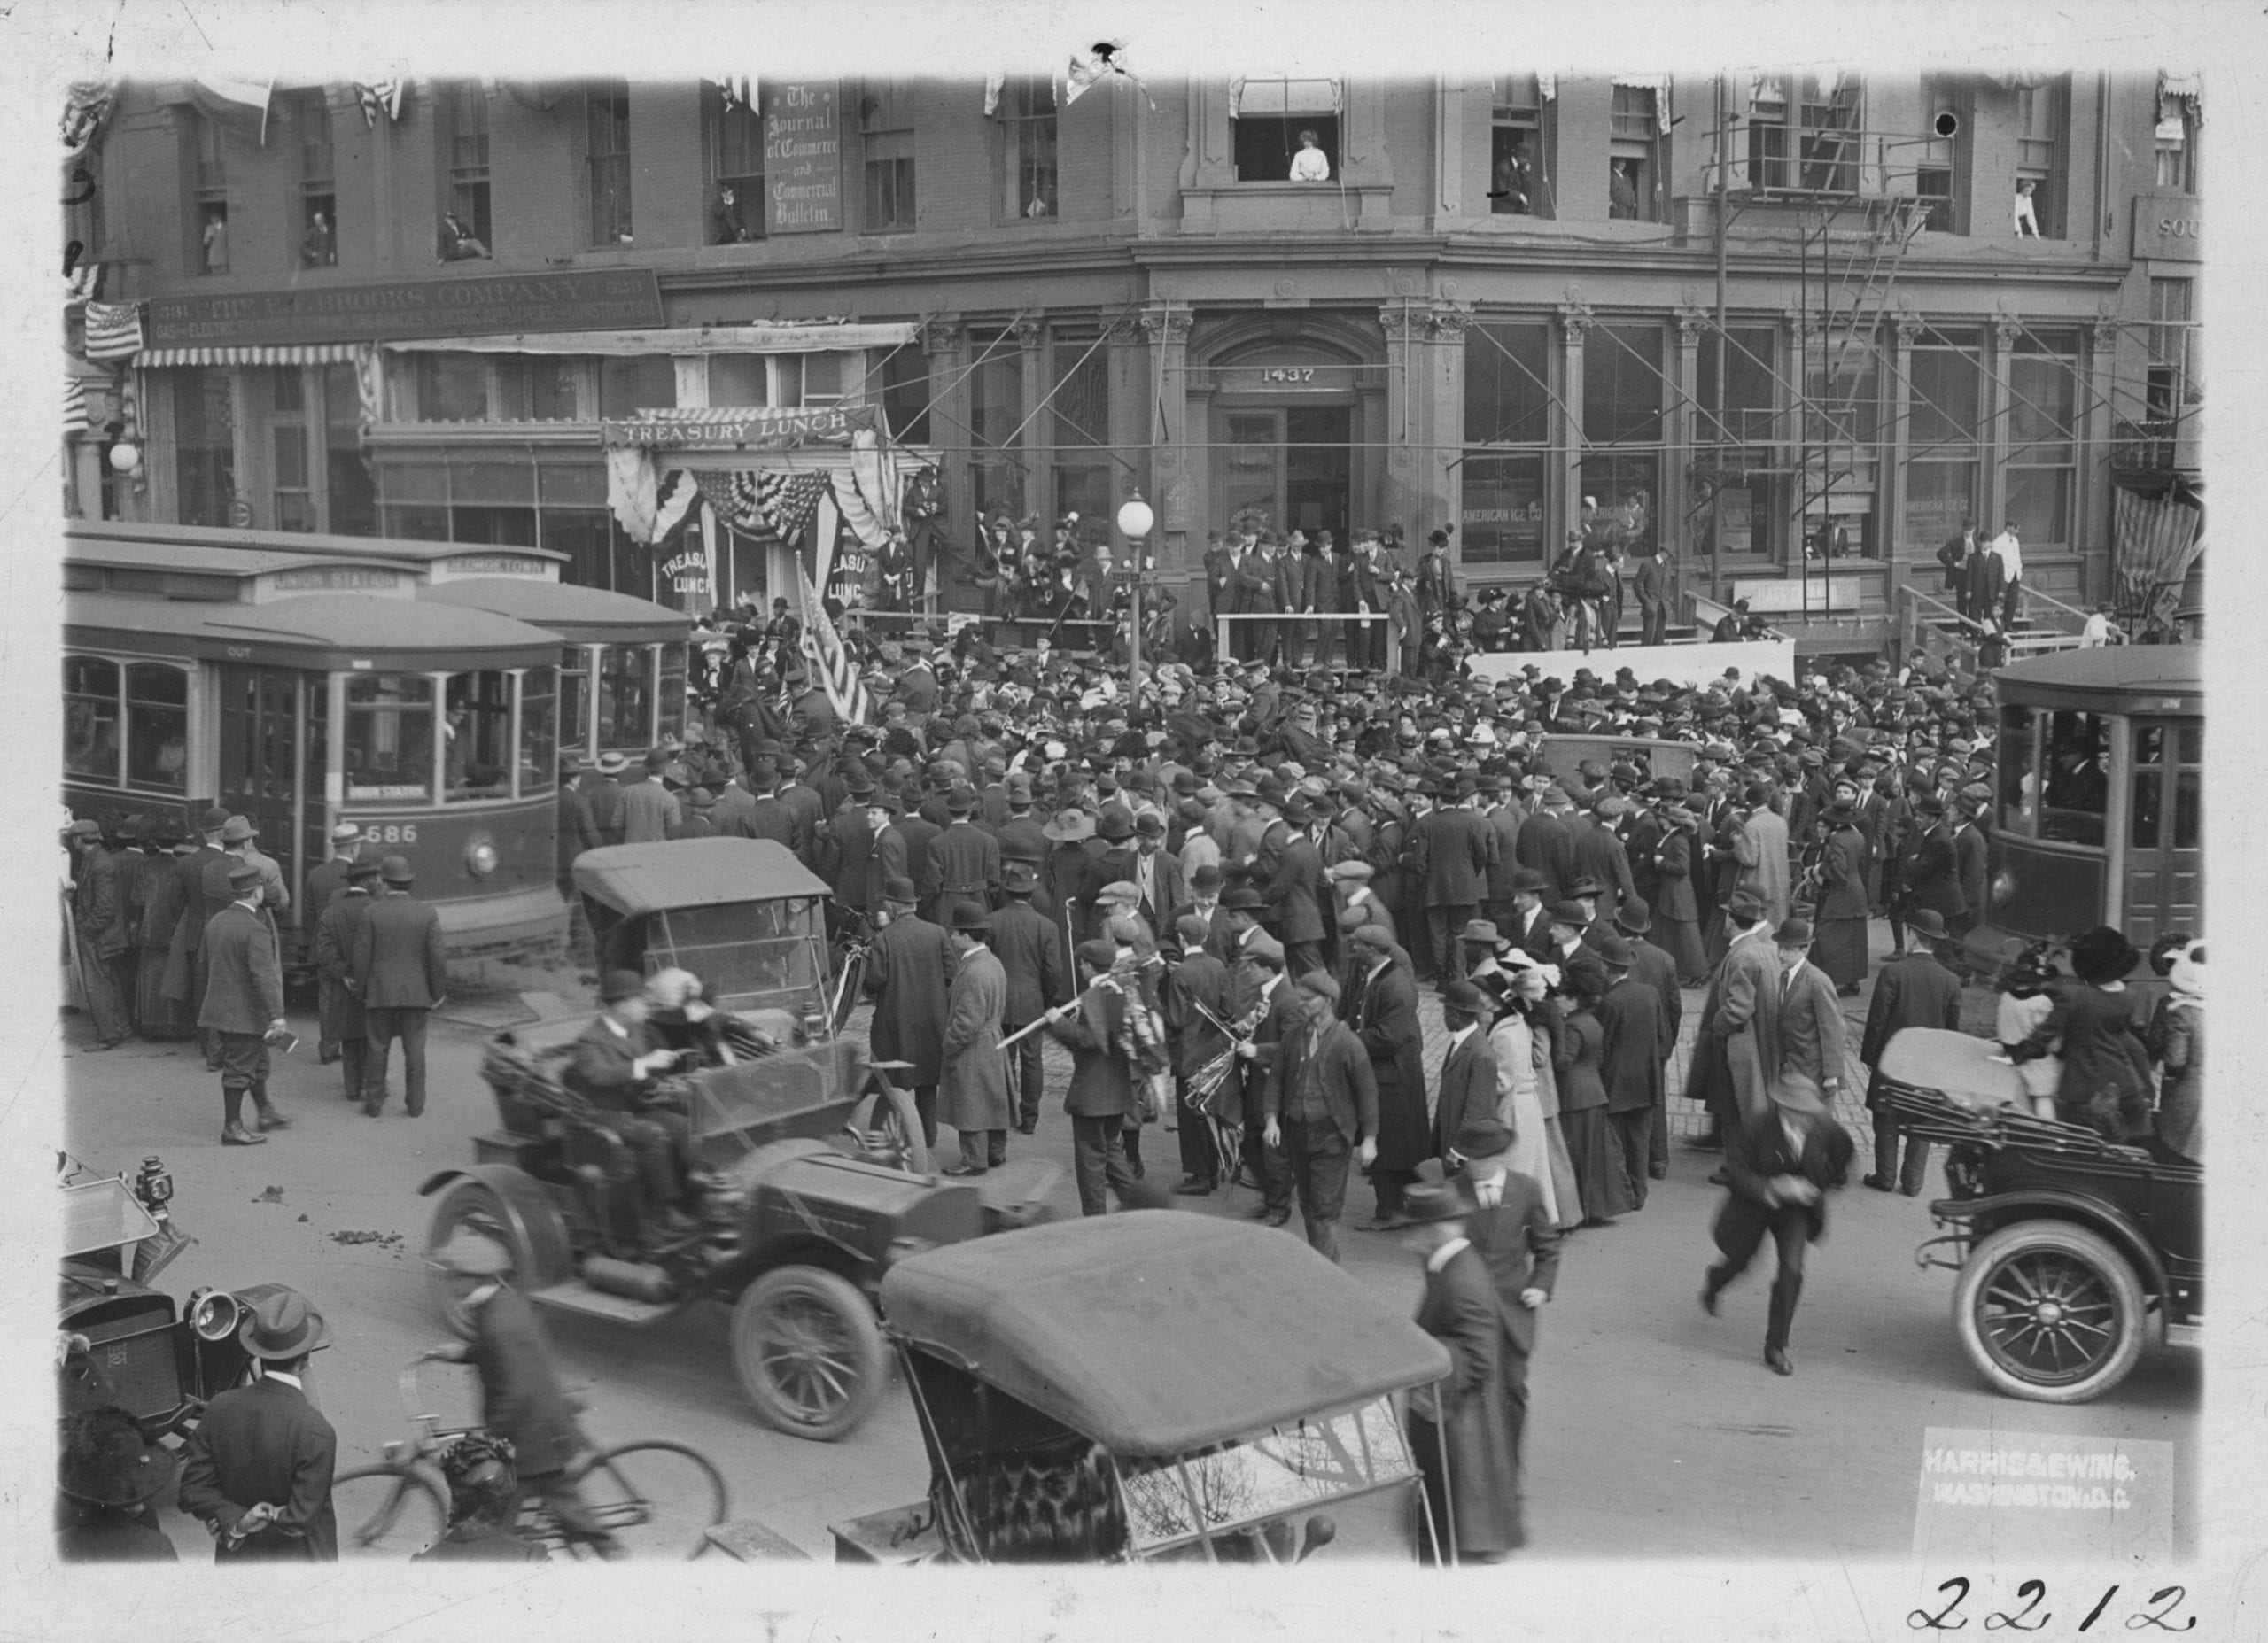 Suffrage open air meeting at the National Capitol demanding that Congress pass the National woman suffrage amendment-- Feb. 1913. Corner Penn. Ave. and 15th St. where the Washington Hotel now stands.